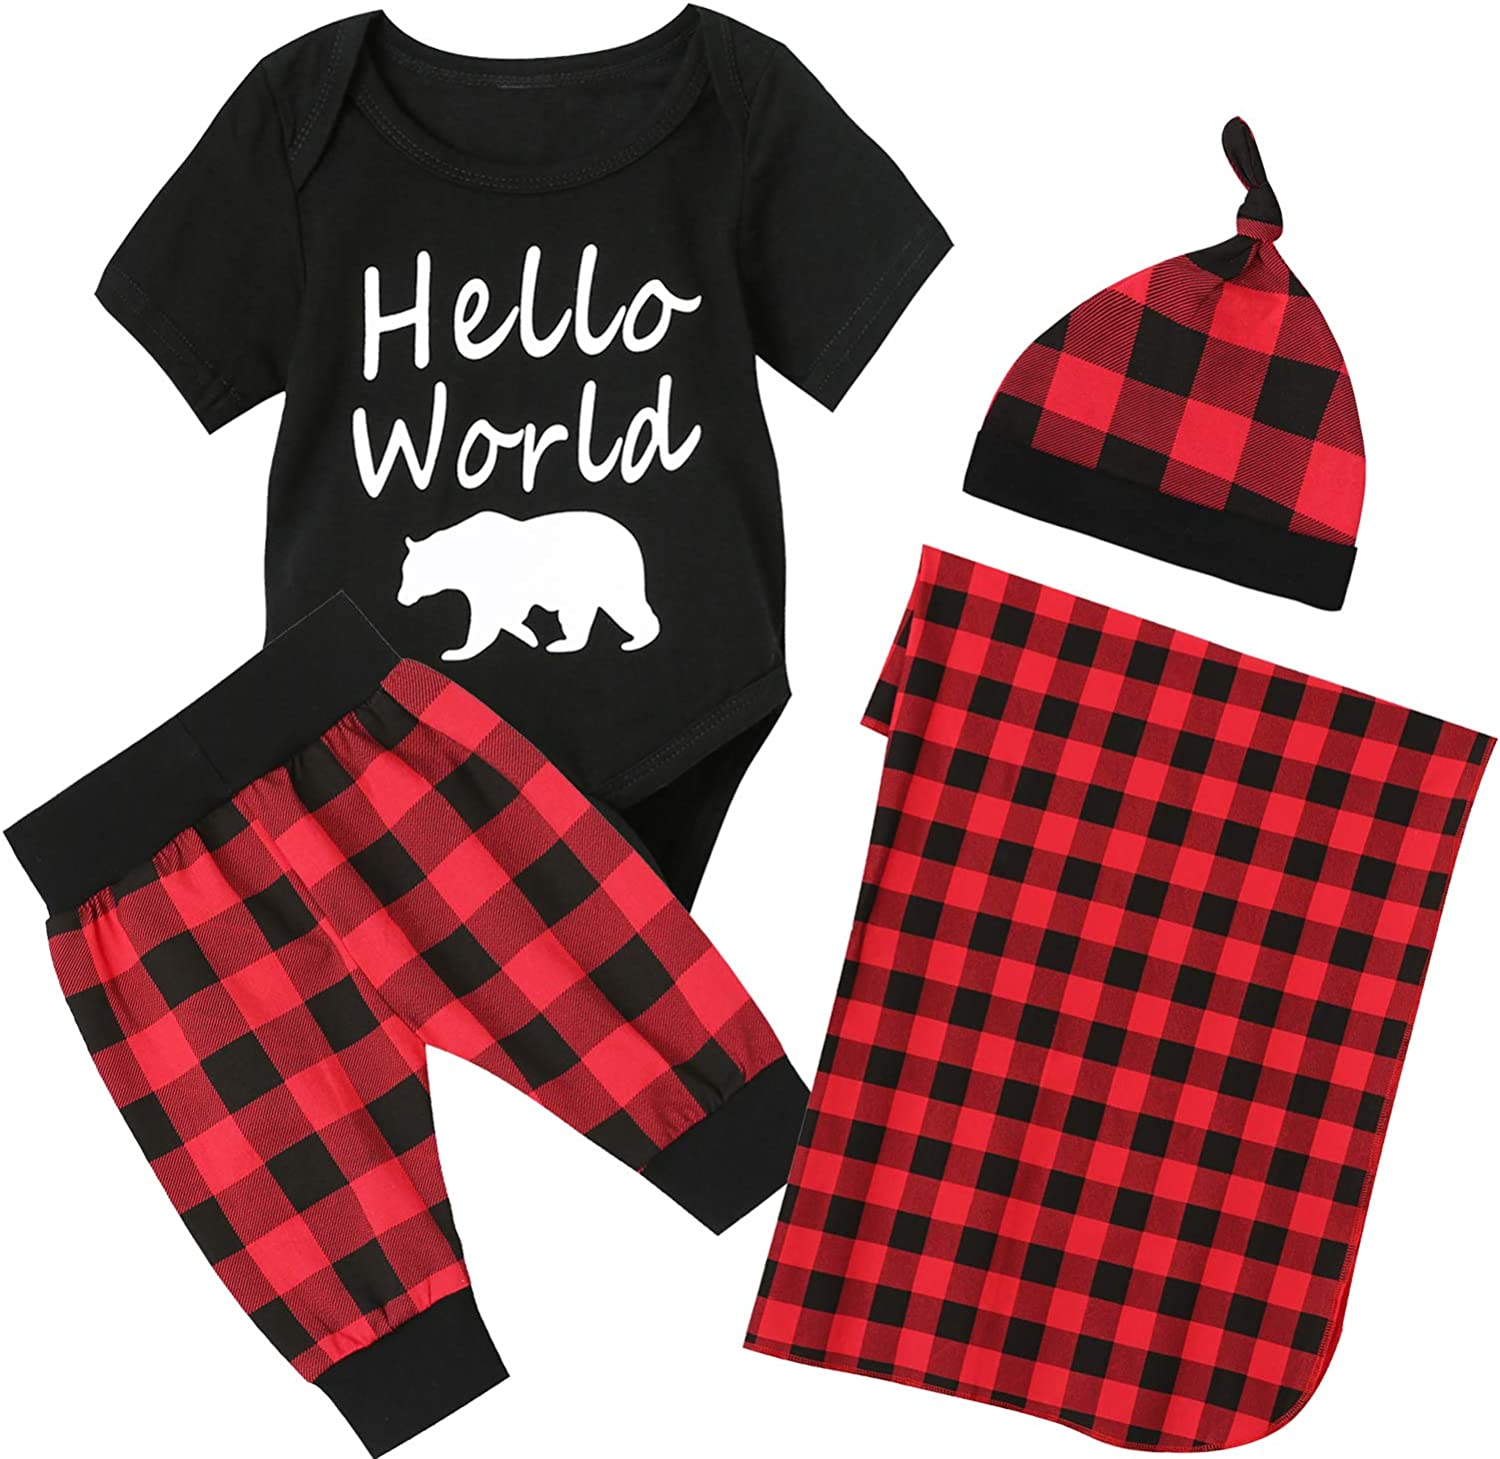 Newborn Baby Boy Outfit Infant Pant Clothing Set with Blanket